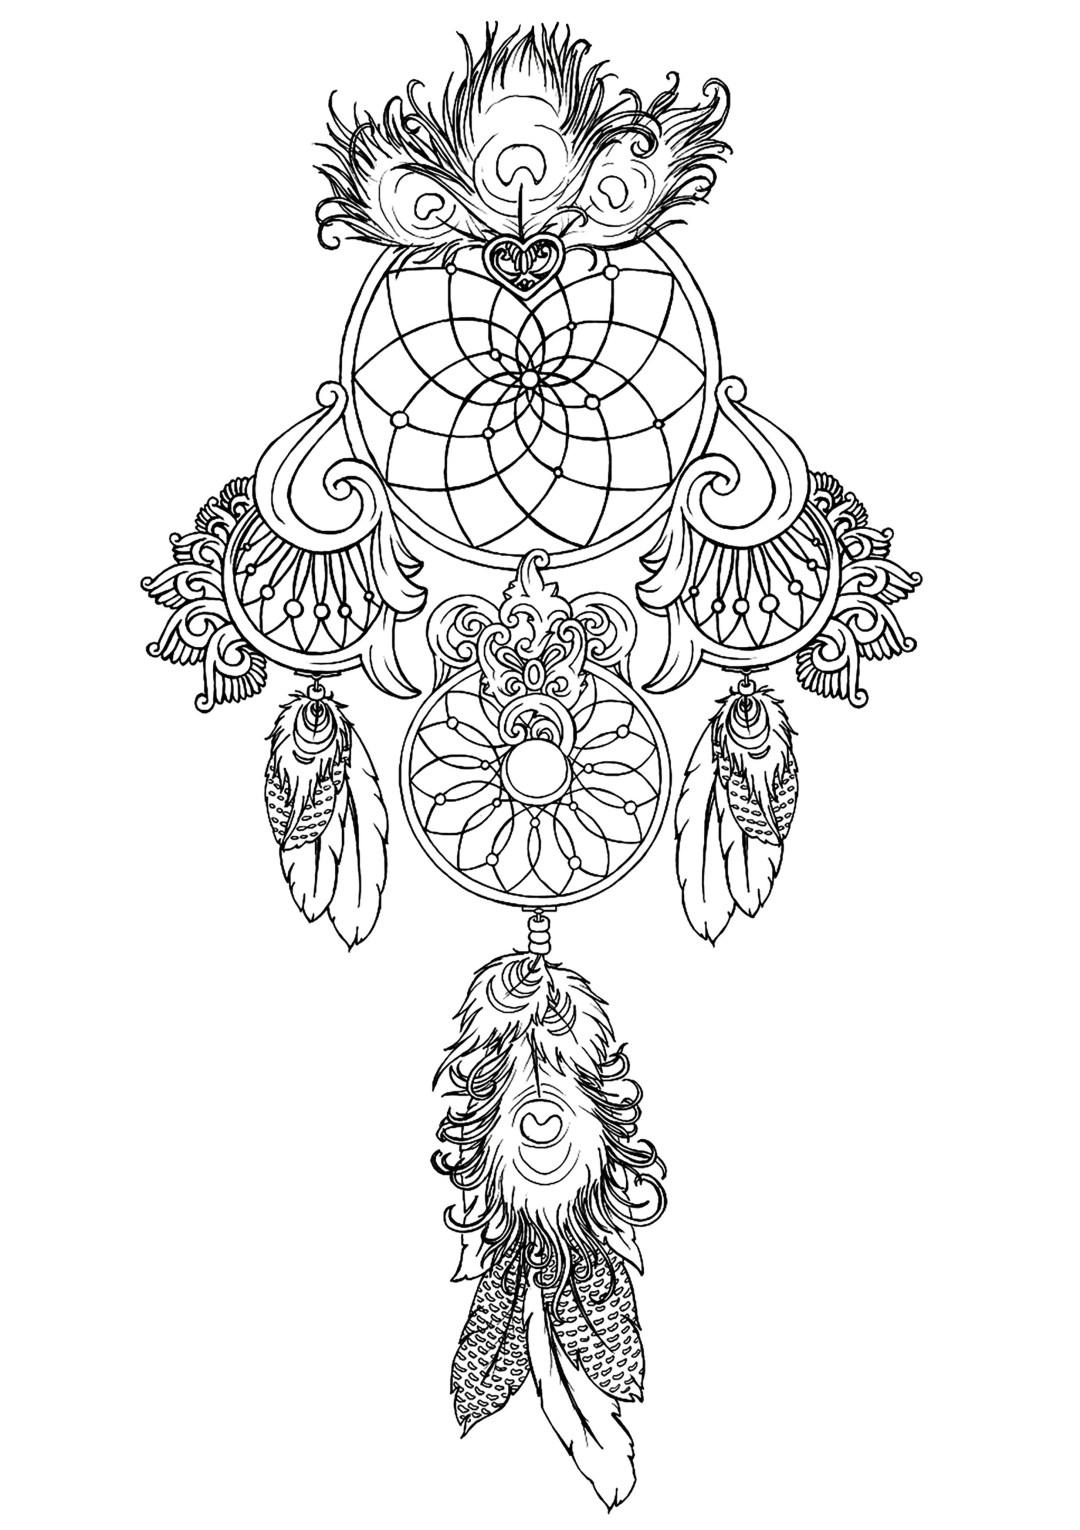 free coloring pages online top 25 free printable lisa frank coloring pages online online pages free coloring